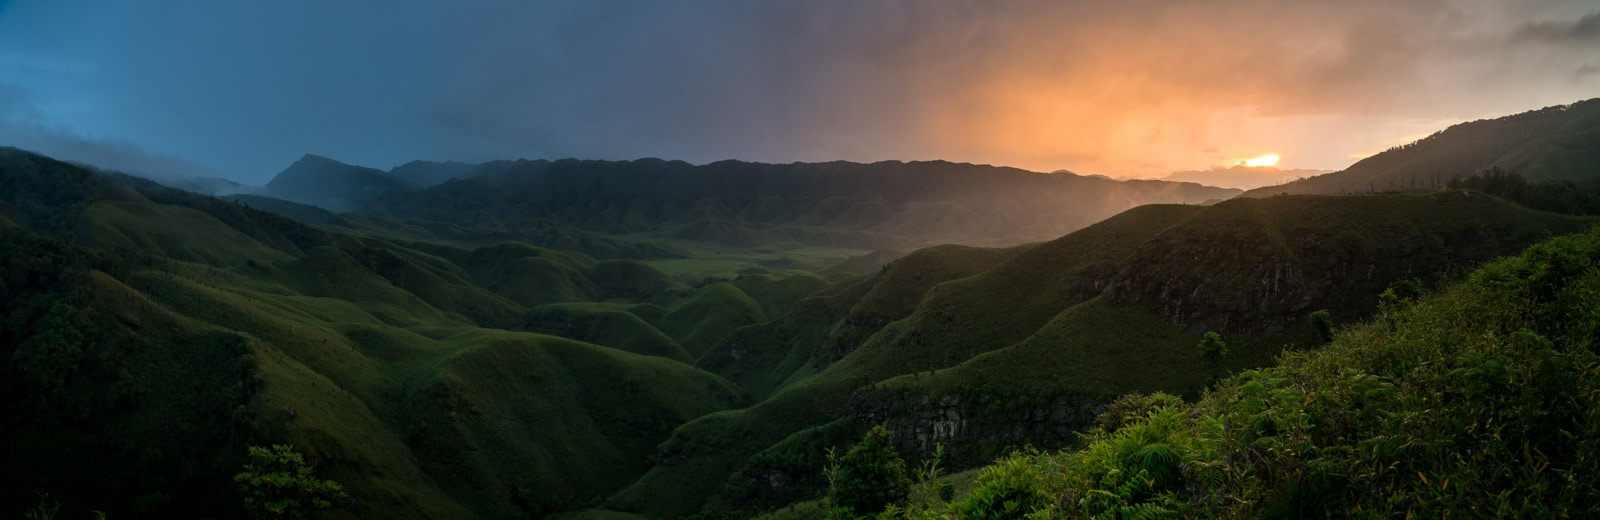 How to get to Dzukou Valley from Nagaland, India - Hot and cold colors in a panorama at sunset - Lost With Purpose